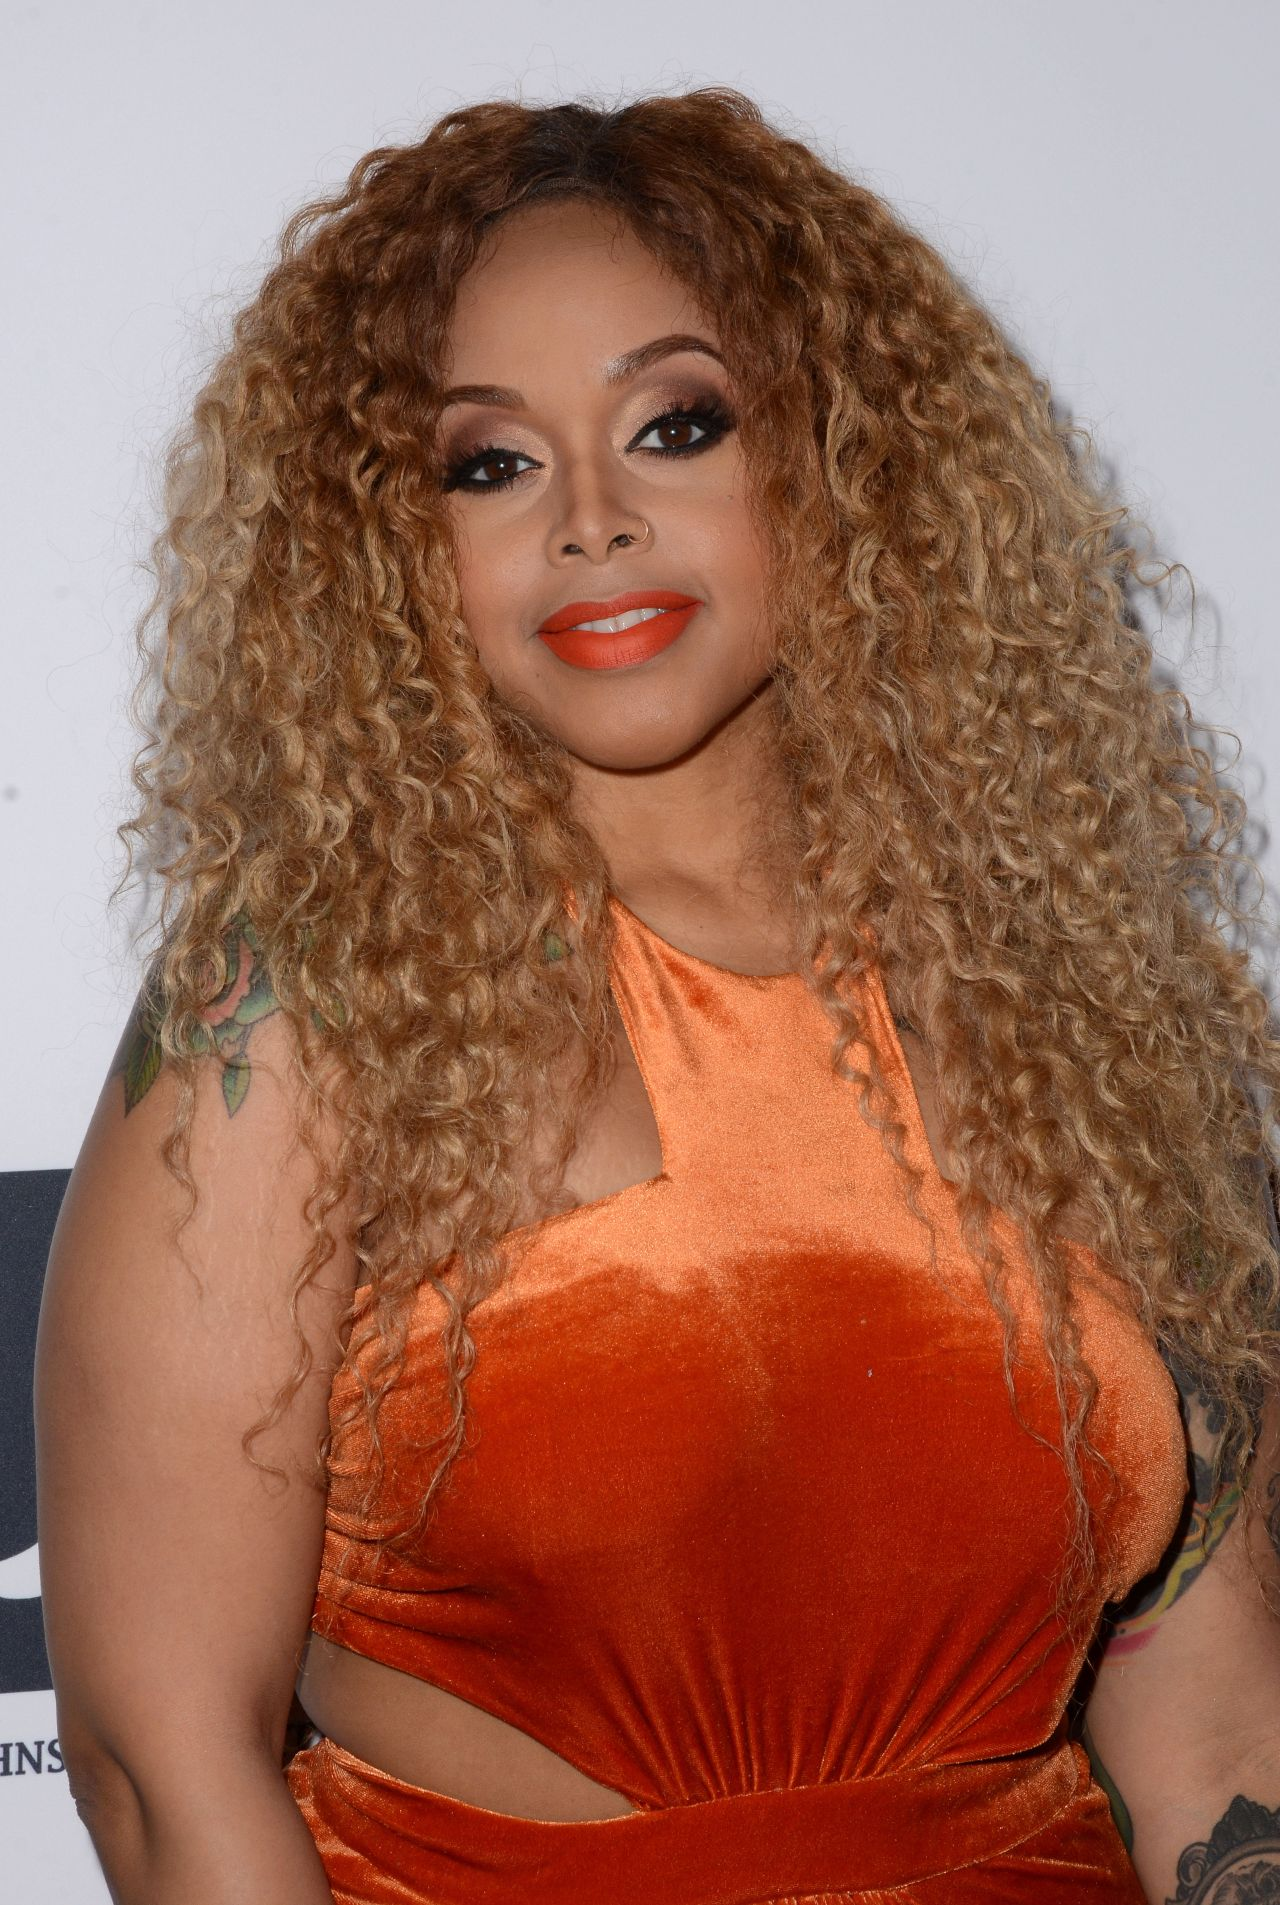 Chrisette Michele Je Caryous Johnson S Married But